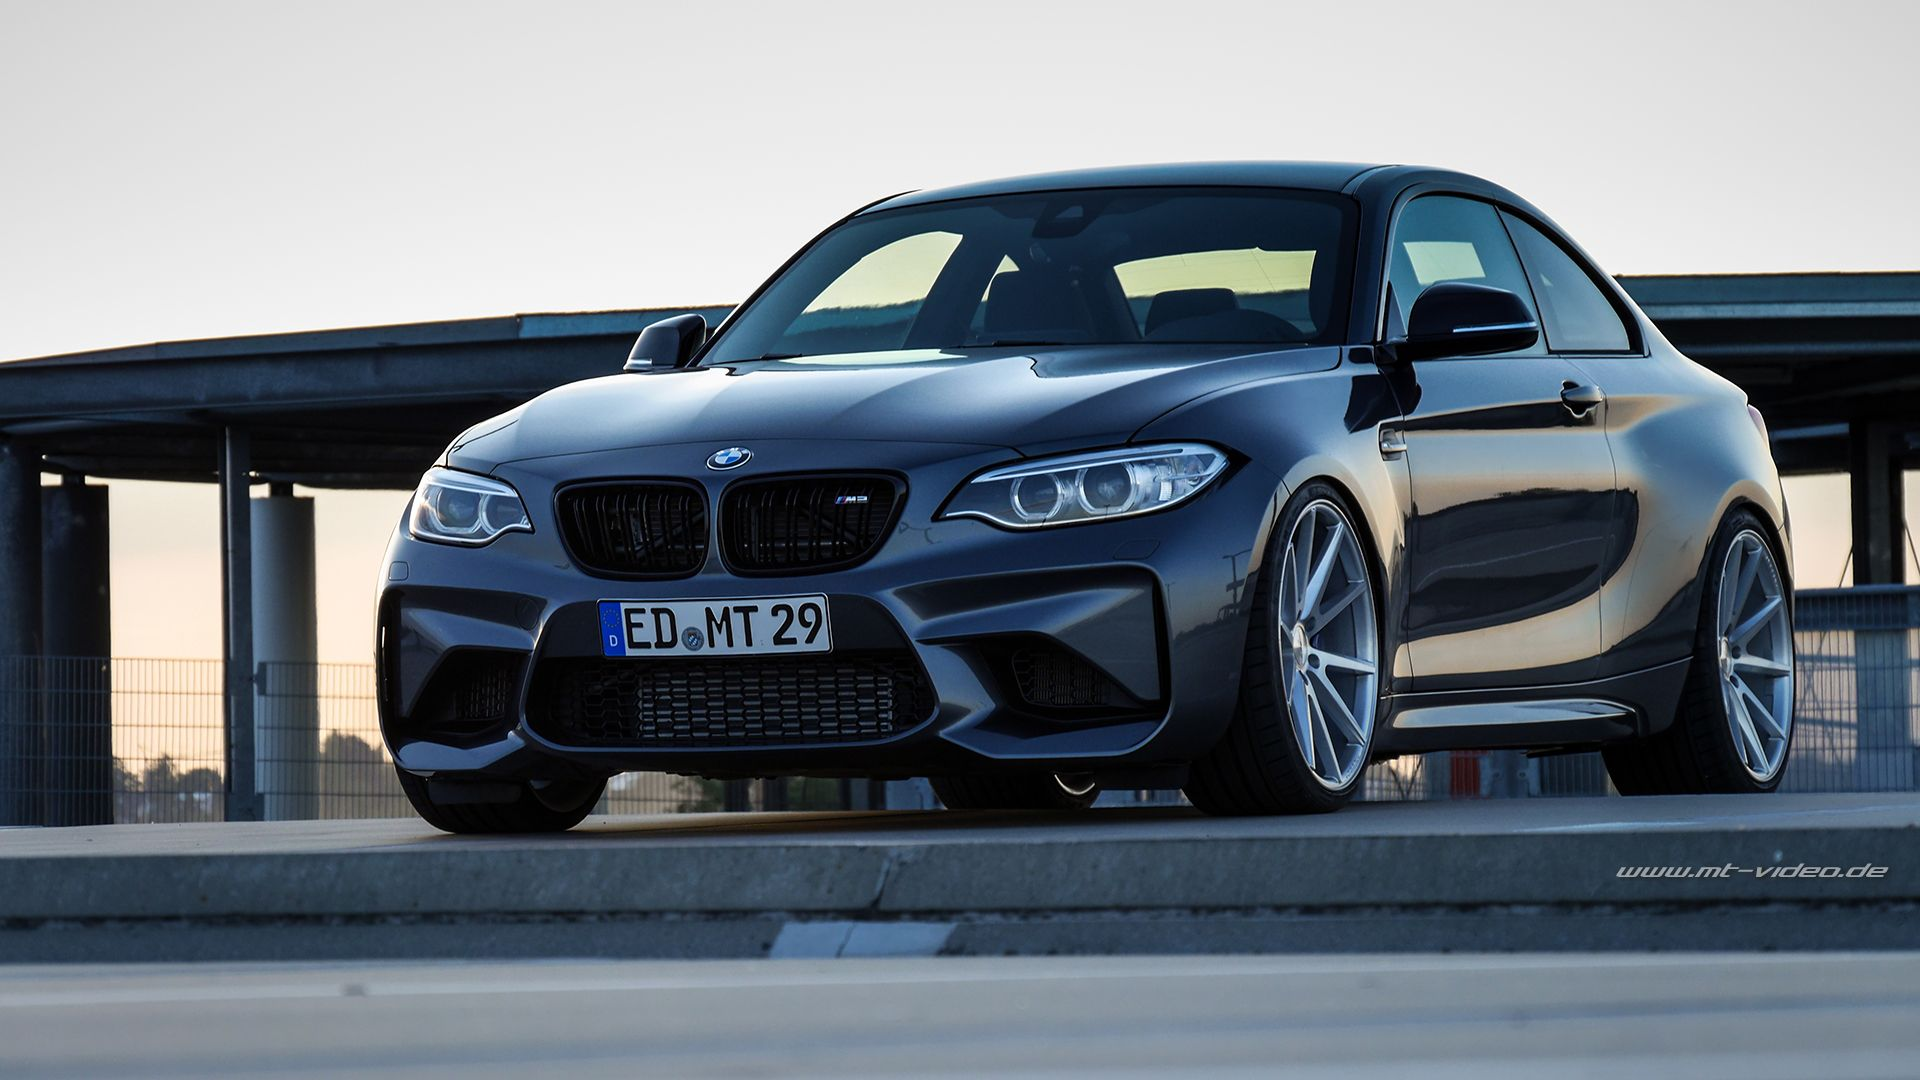 Bmw M2 Looks Great In This New Photoshoot Http Www Bmwblog Com 2016 08 30 Bmw M2 Looks Great